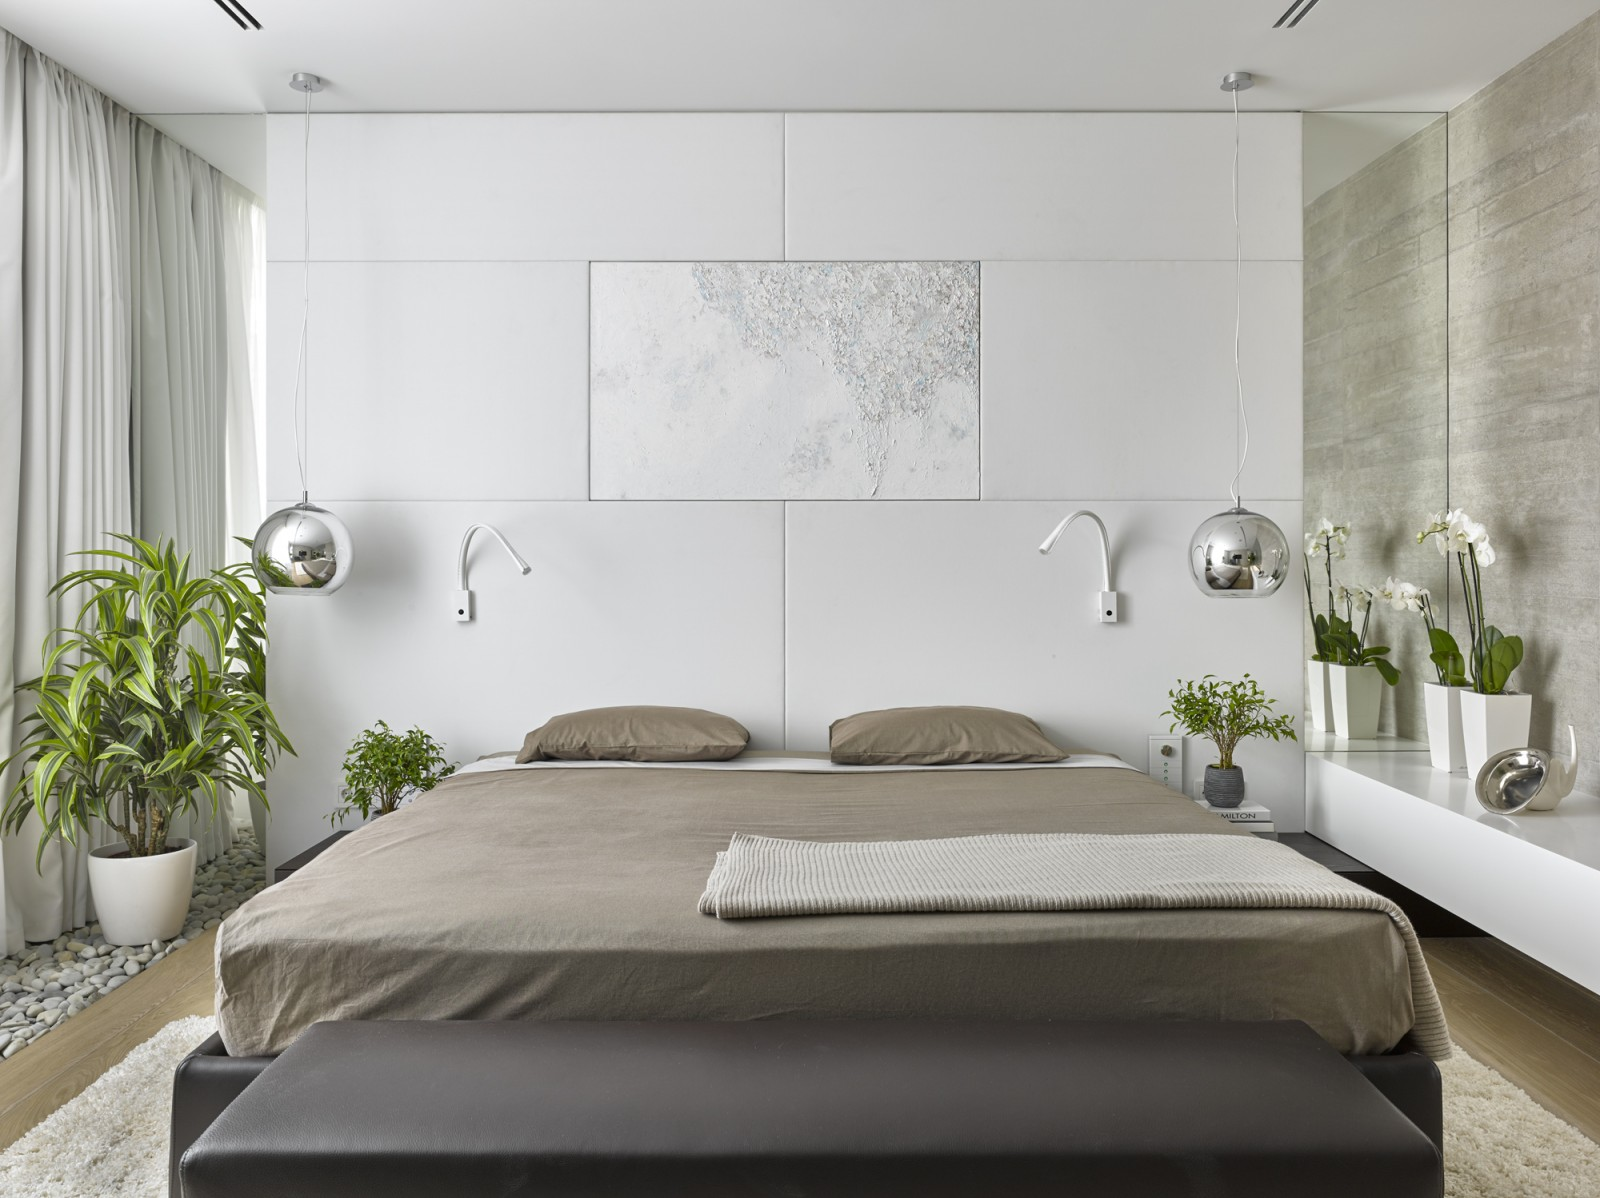 20 Small Bedroom Ideas That Will Leave You Speechless ... on Small Bedroom Ideas  id=74623